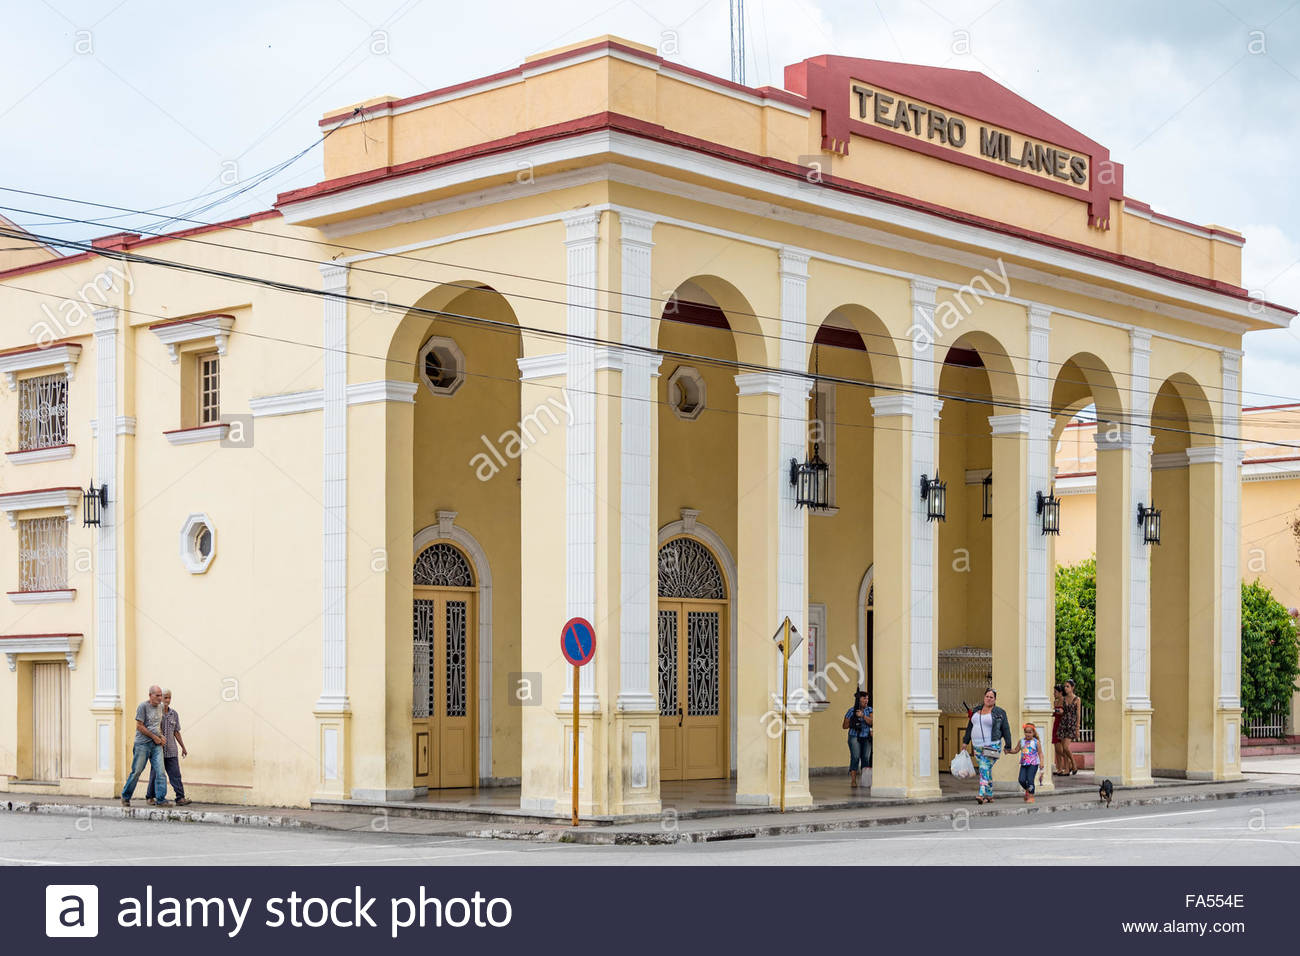 Stonecrest Mall Amc >> People Movie Theater Exterior Stock Photos & People Movie Theater Exterior Stock Images - Alamy